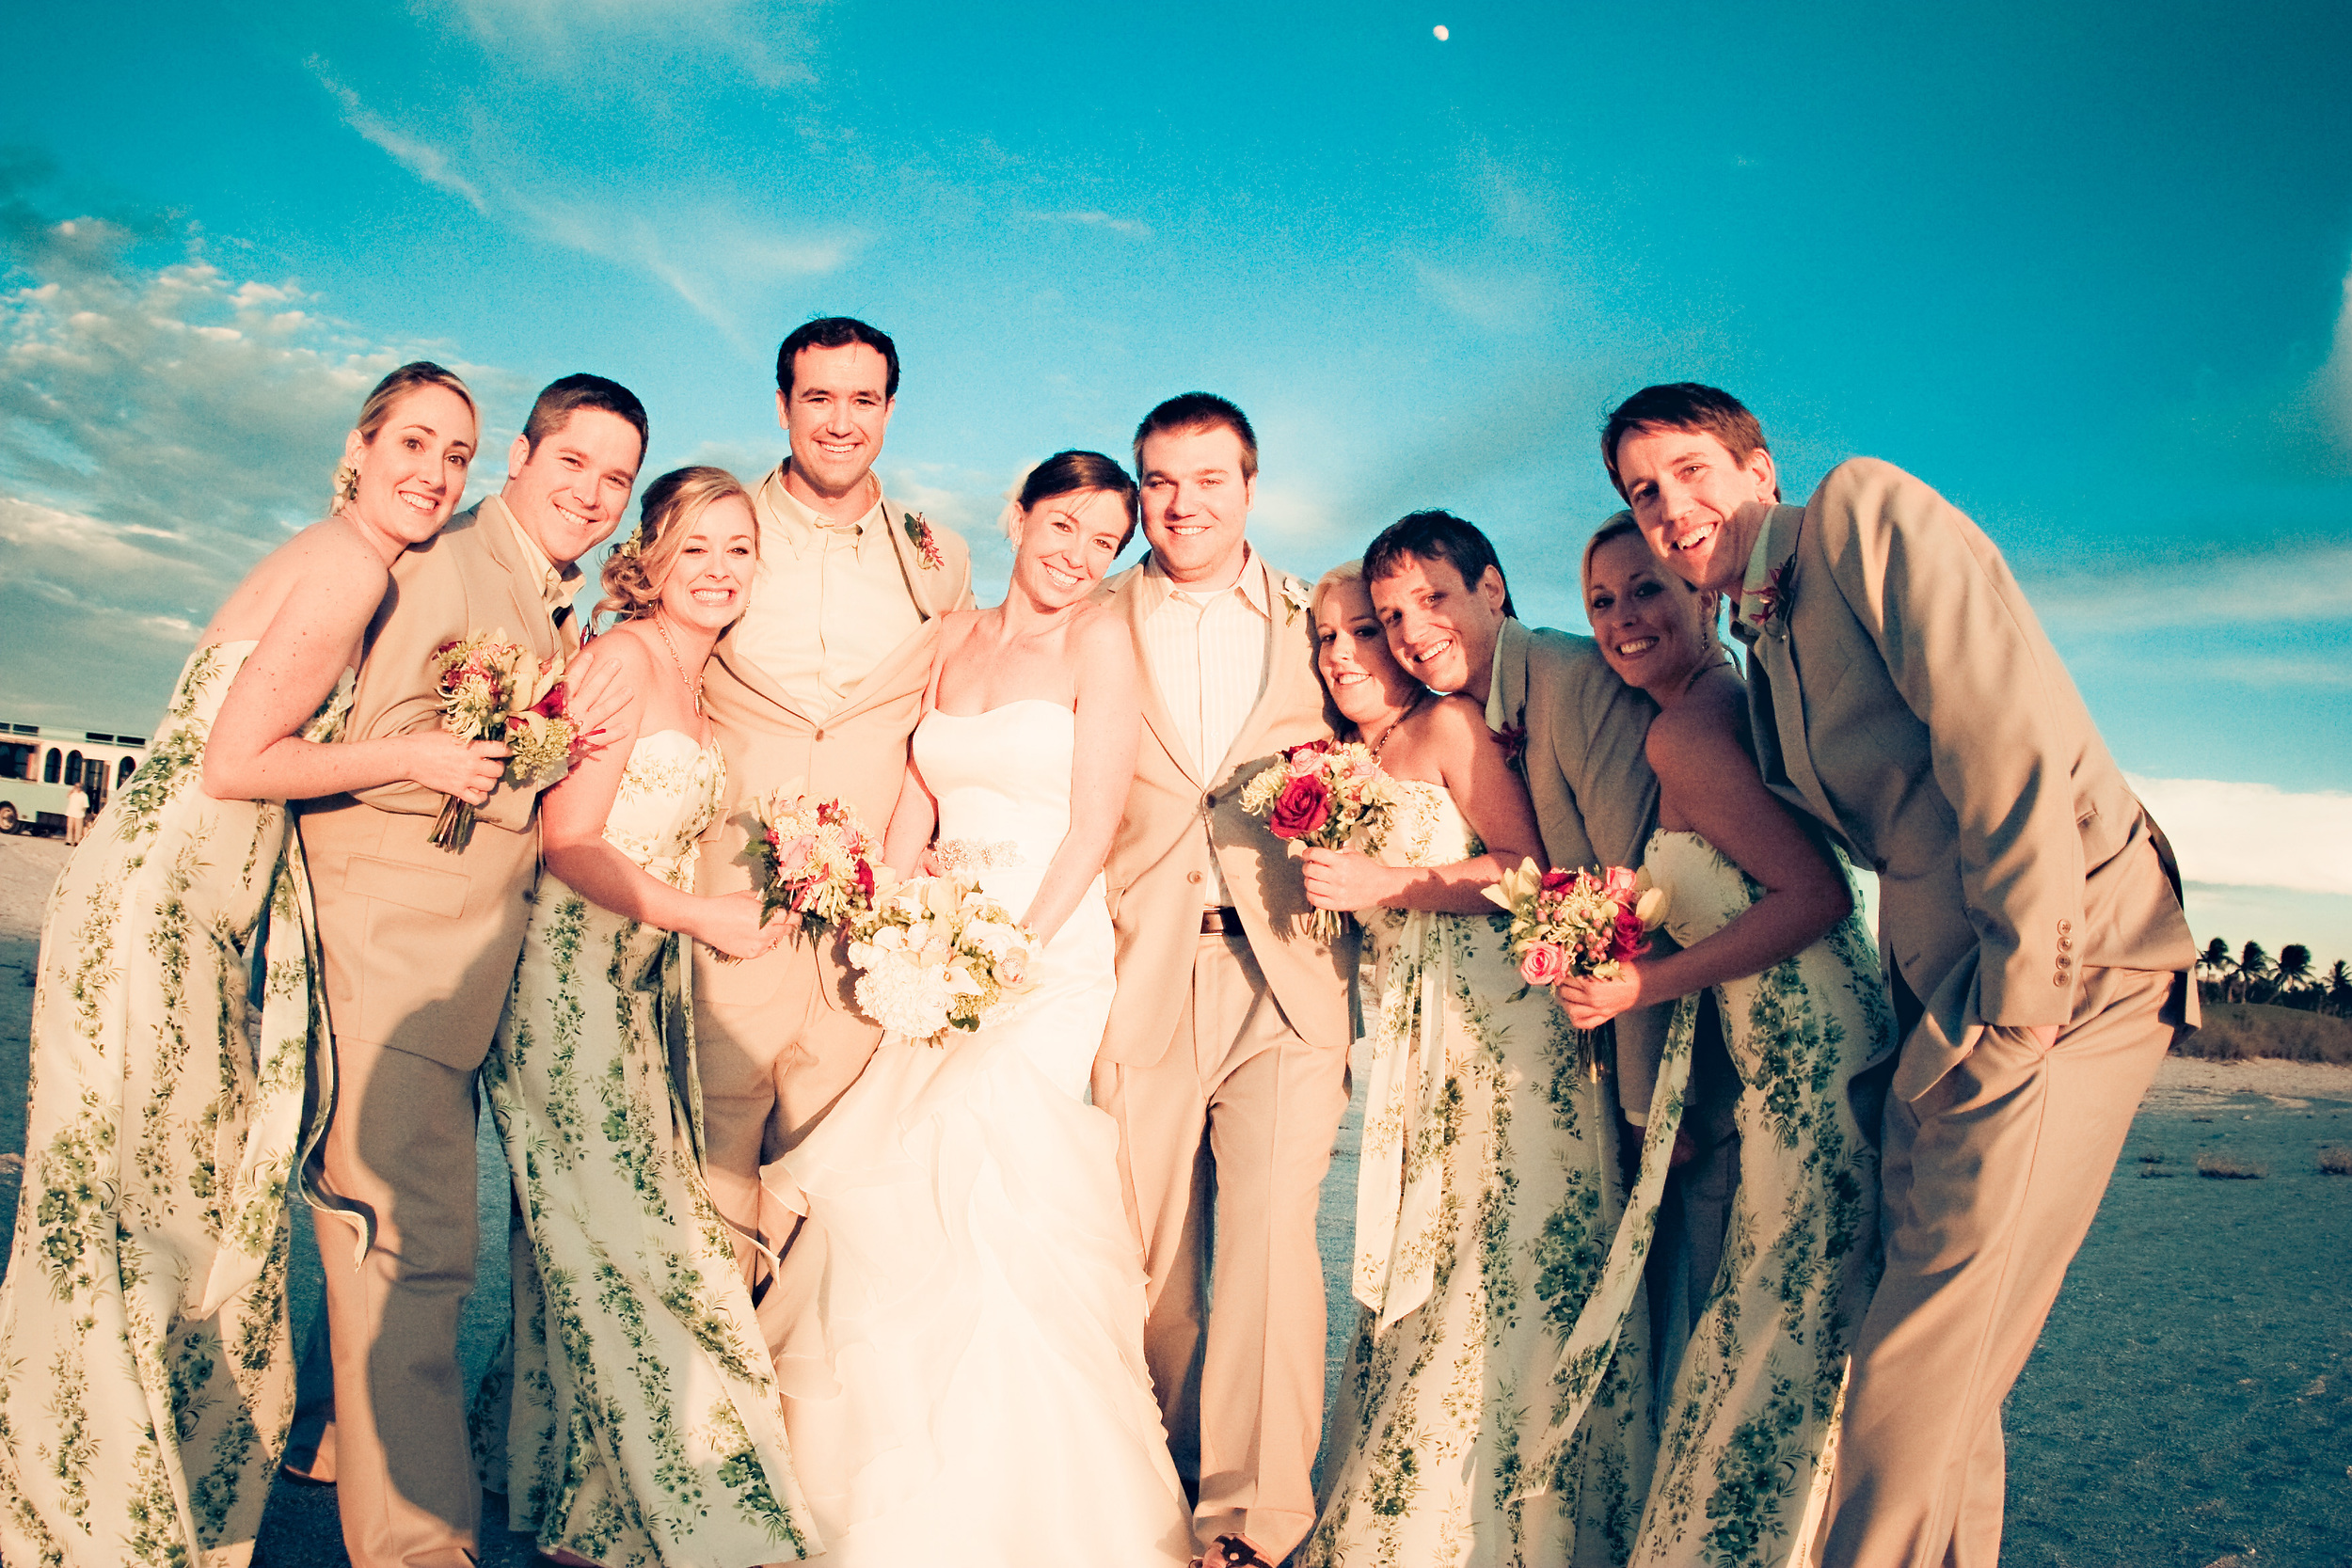 031_orlando_wedding_photographer_brian_adams_photographics.jpg